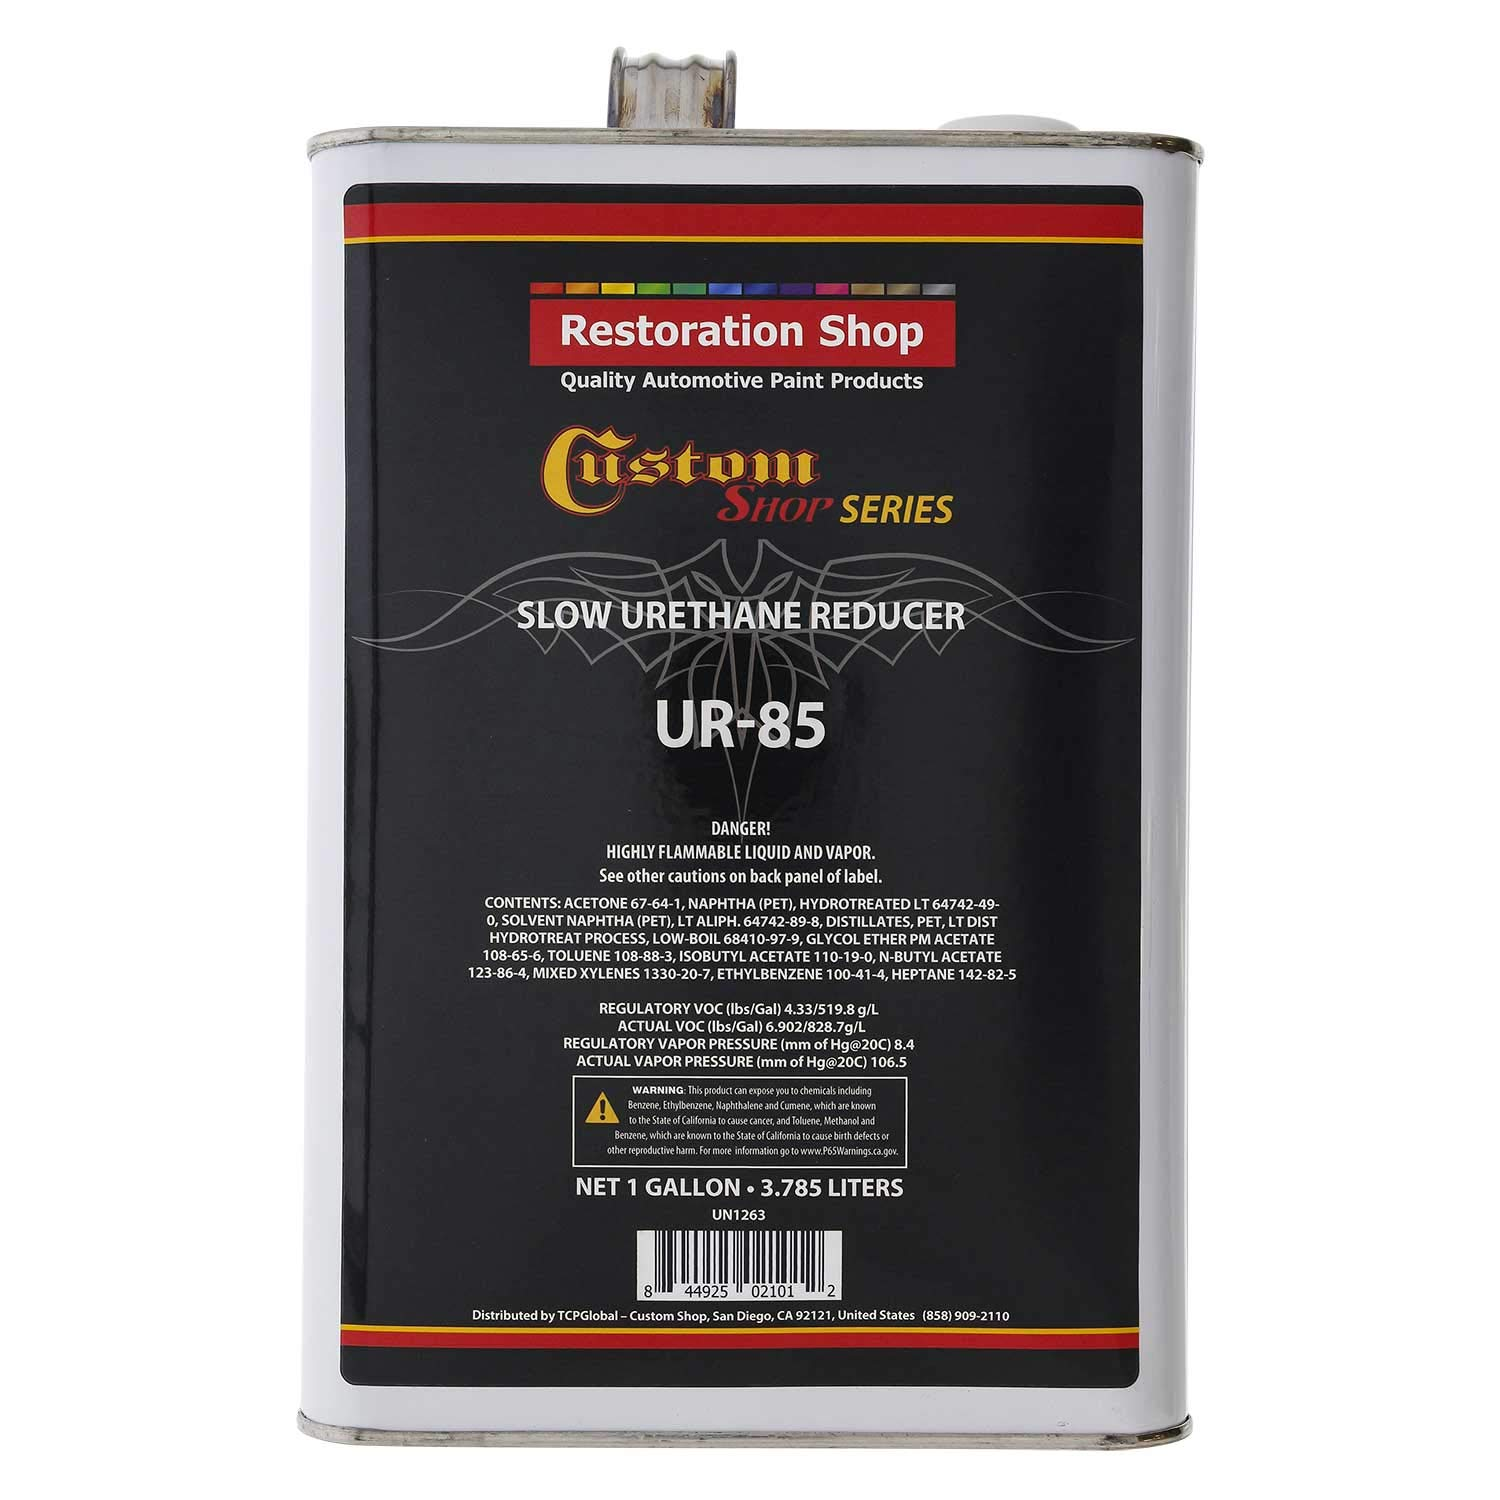 Restoration Shop/Custom Shop - UR85 Slow Urethane Reducer (Gallon) - High Perfomance Automotive Grade for Automotive Paint and Industrial Paint Use - For Higher Temperature Condition increase Flow